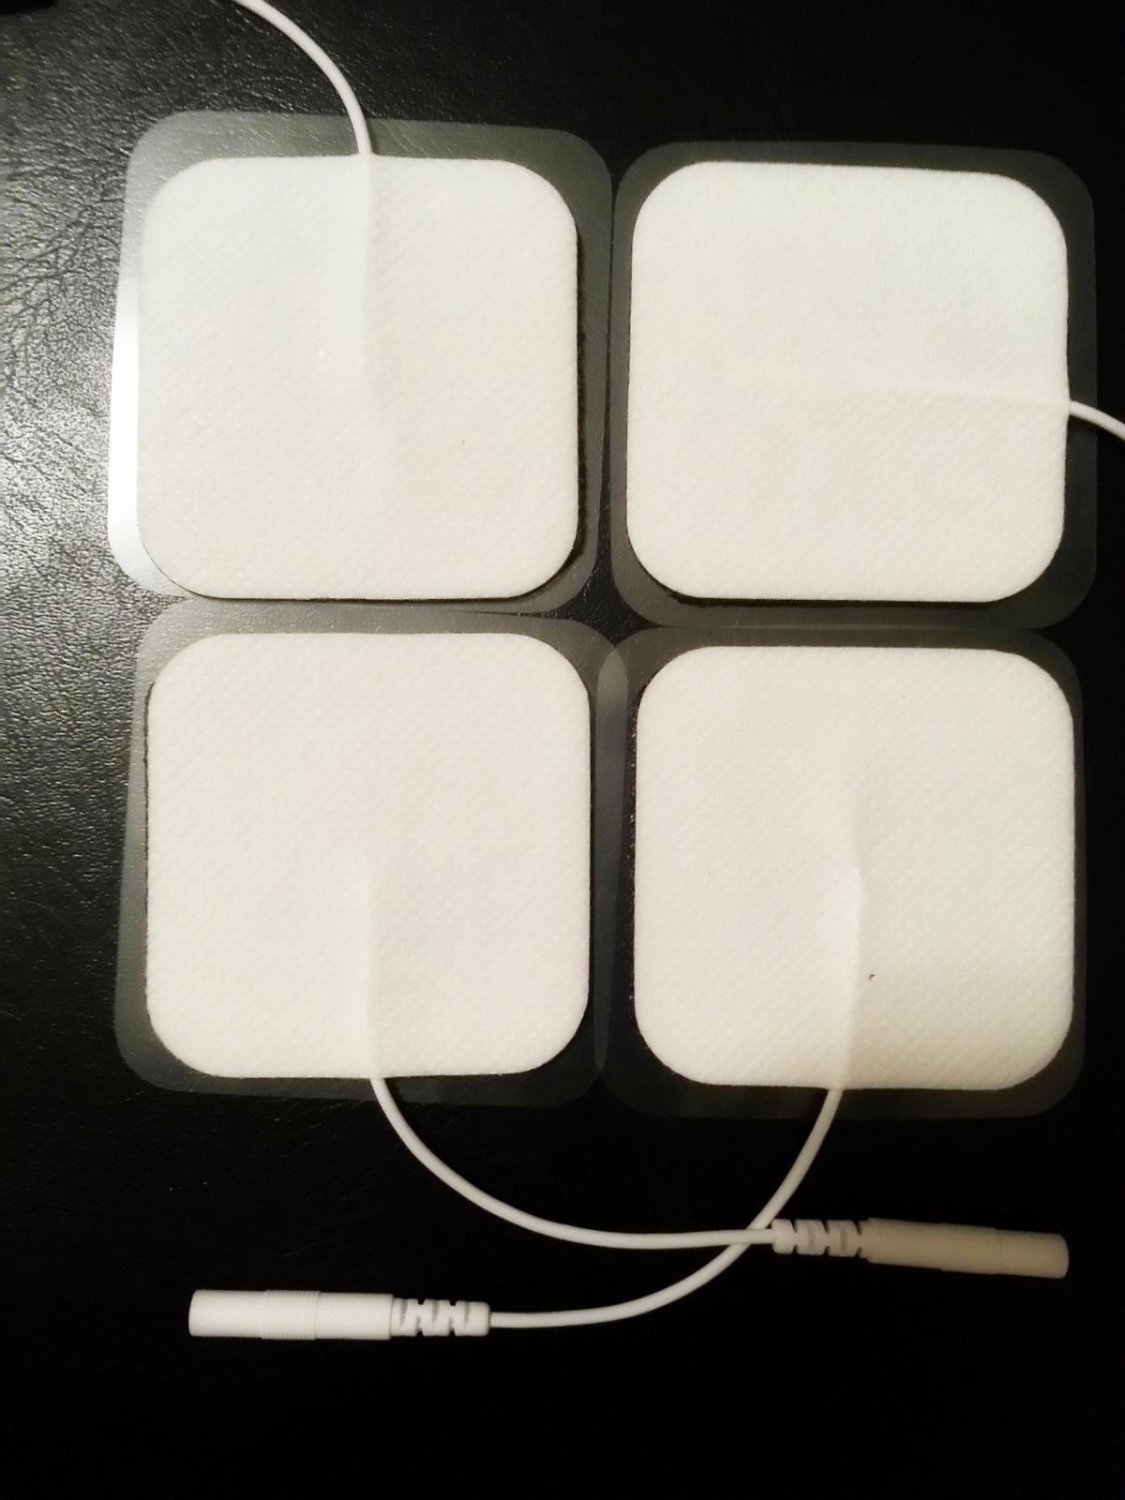 8 SQUARE ELECTRODE MASSAGE PADS for ChoiceMMed Electronic Pulse Massager